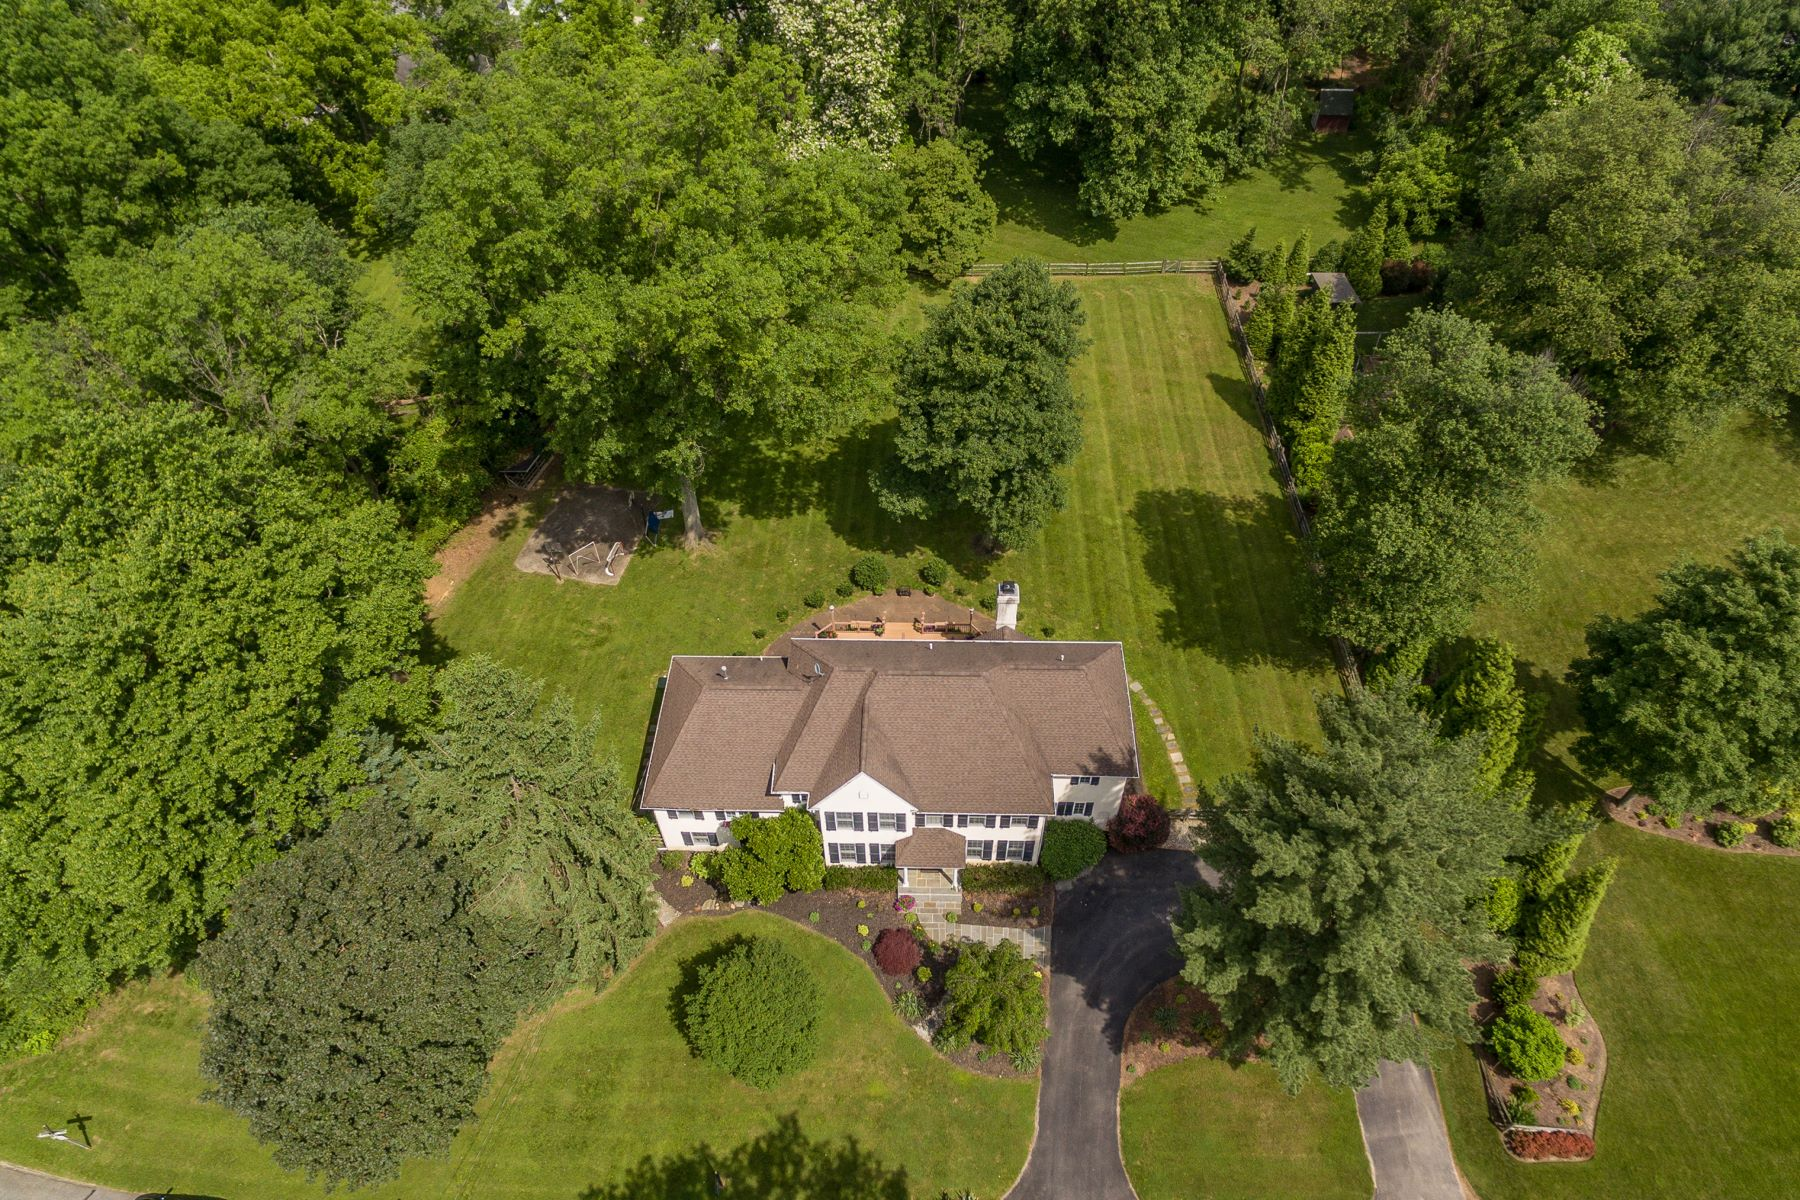 Single Family Home for Sale at 18 Clearview Rd 18 CLEARVIEW RD Malvern, Pennsylvania 19355 United States